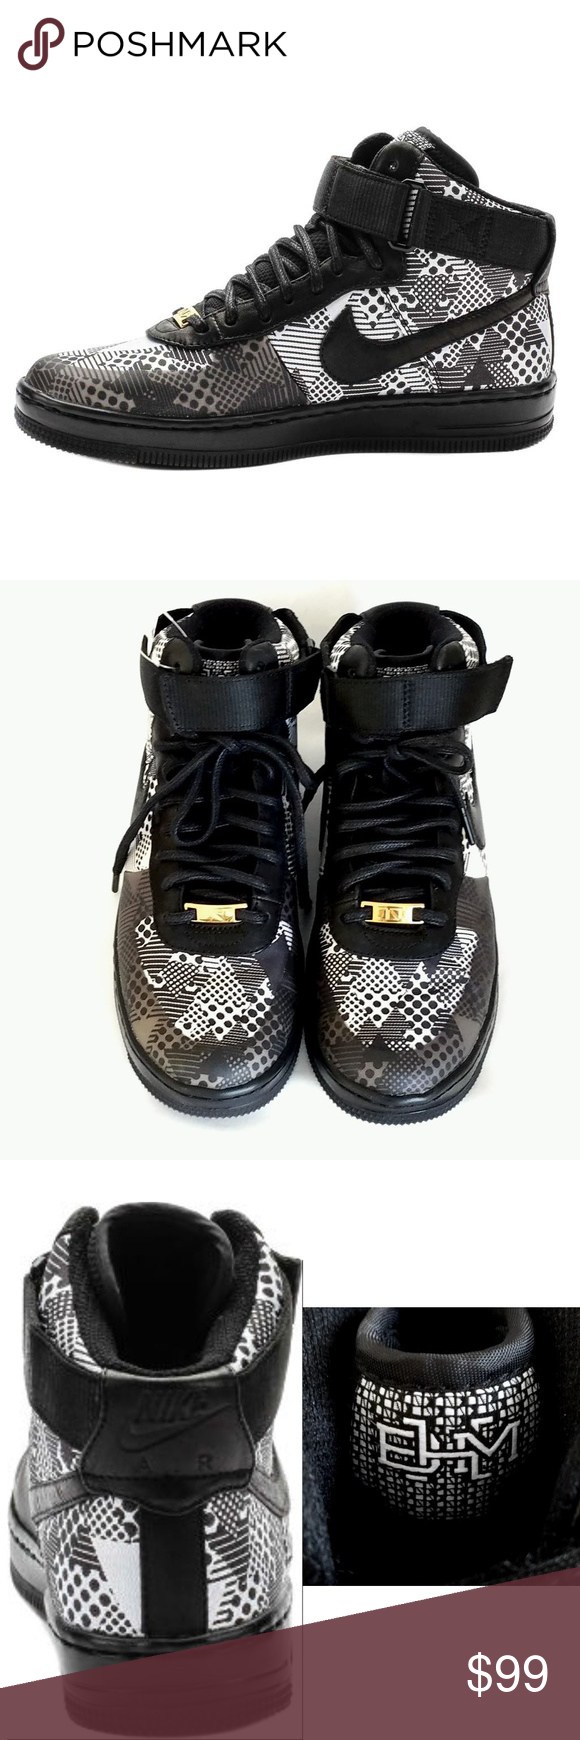 NWT Nike Air Force One BHM High Top Sneakers Shoes Special